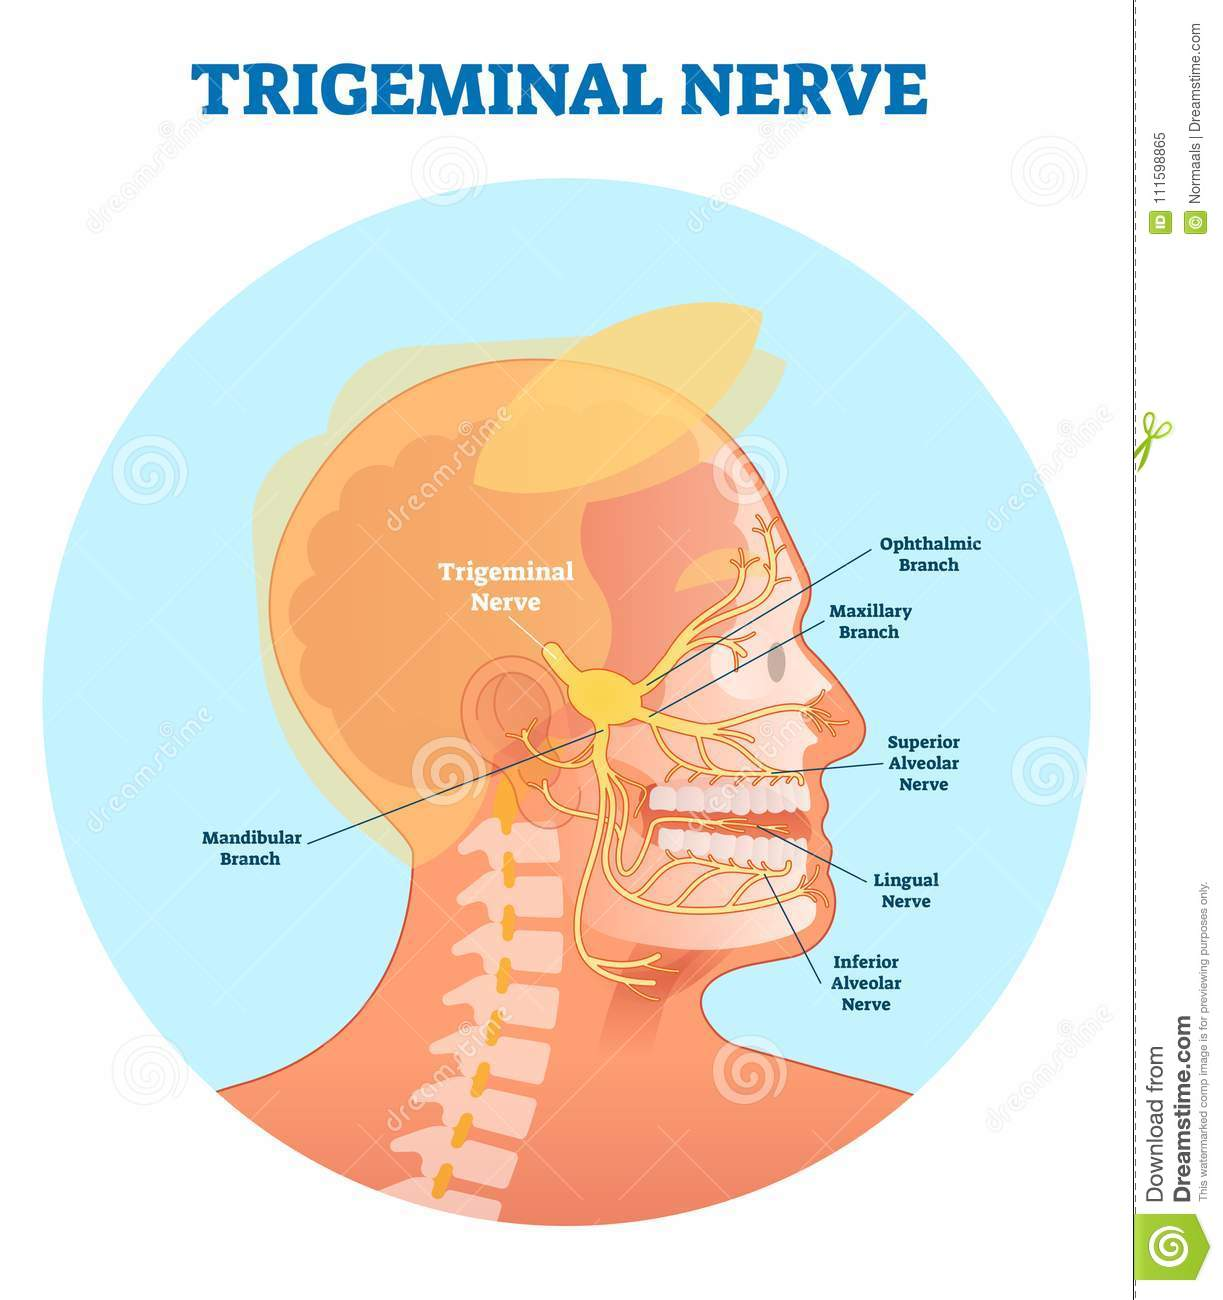 hight resolution of trigeminal nerve anatomical vector illustration diagram with human cranial nerve diagram head nerve diagram